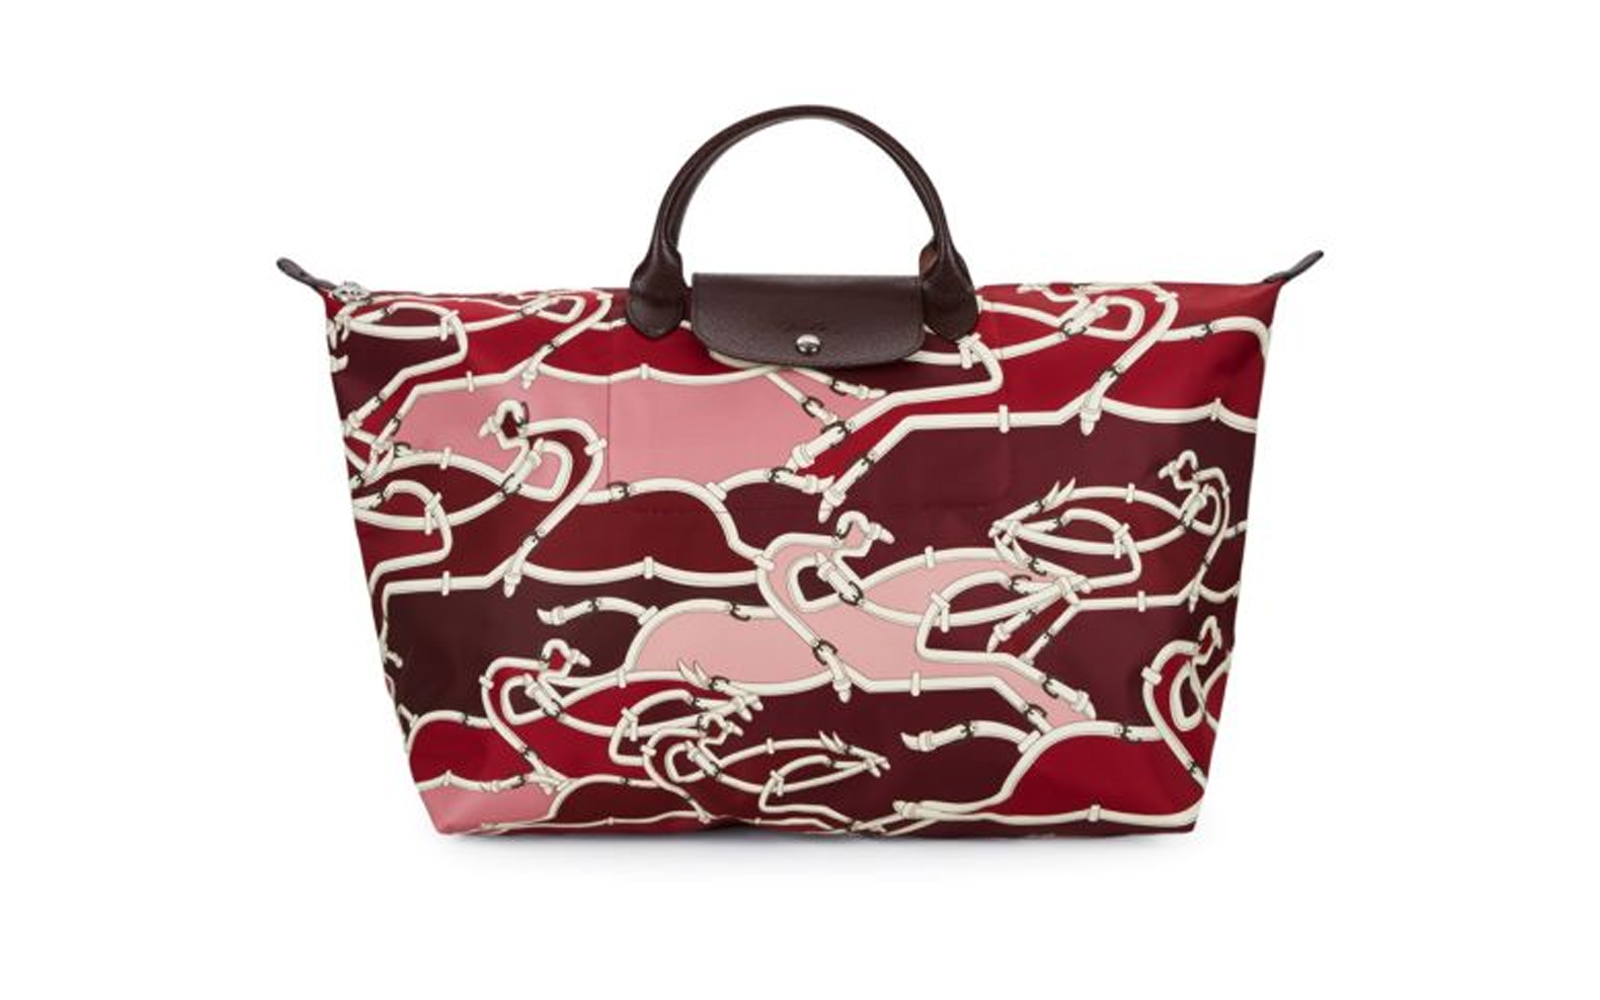 73578da4293a Every Longchamp Bag You Could Ever Need Is on Sale Right Now ...